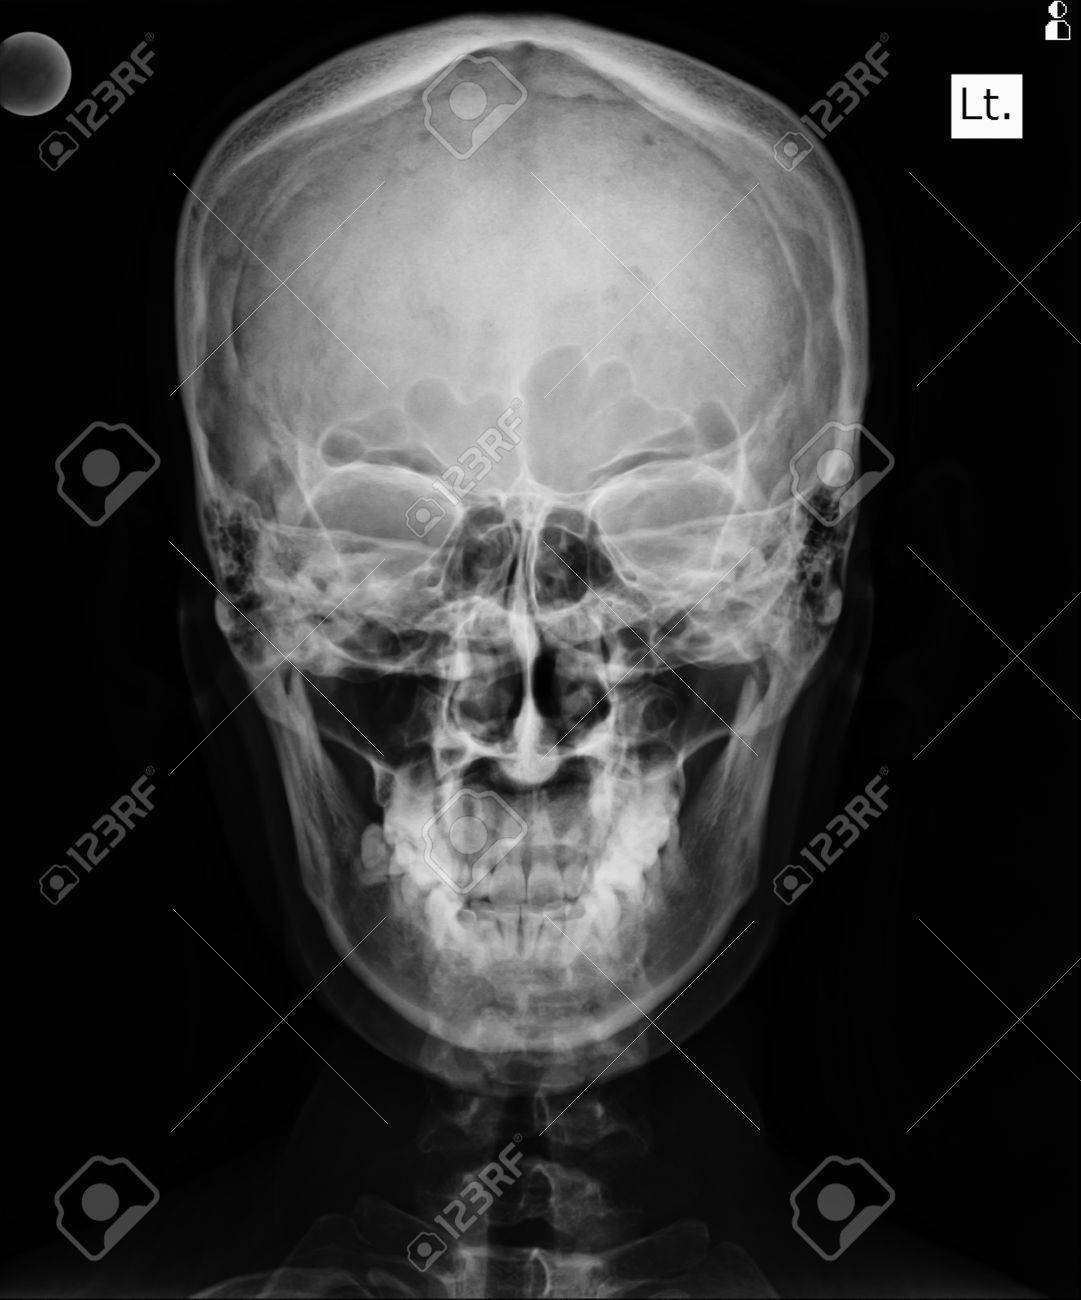 Front Face Skull X Ray Image Stock Photo Picture And Royalty Free